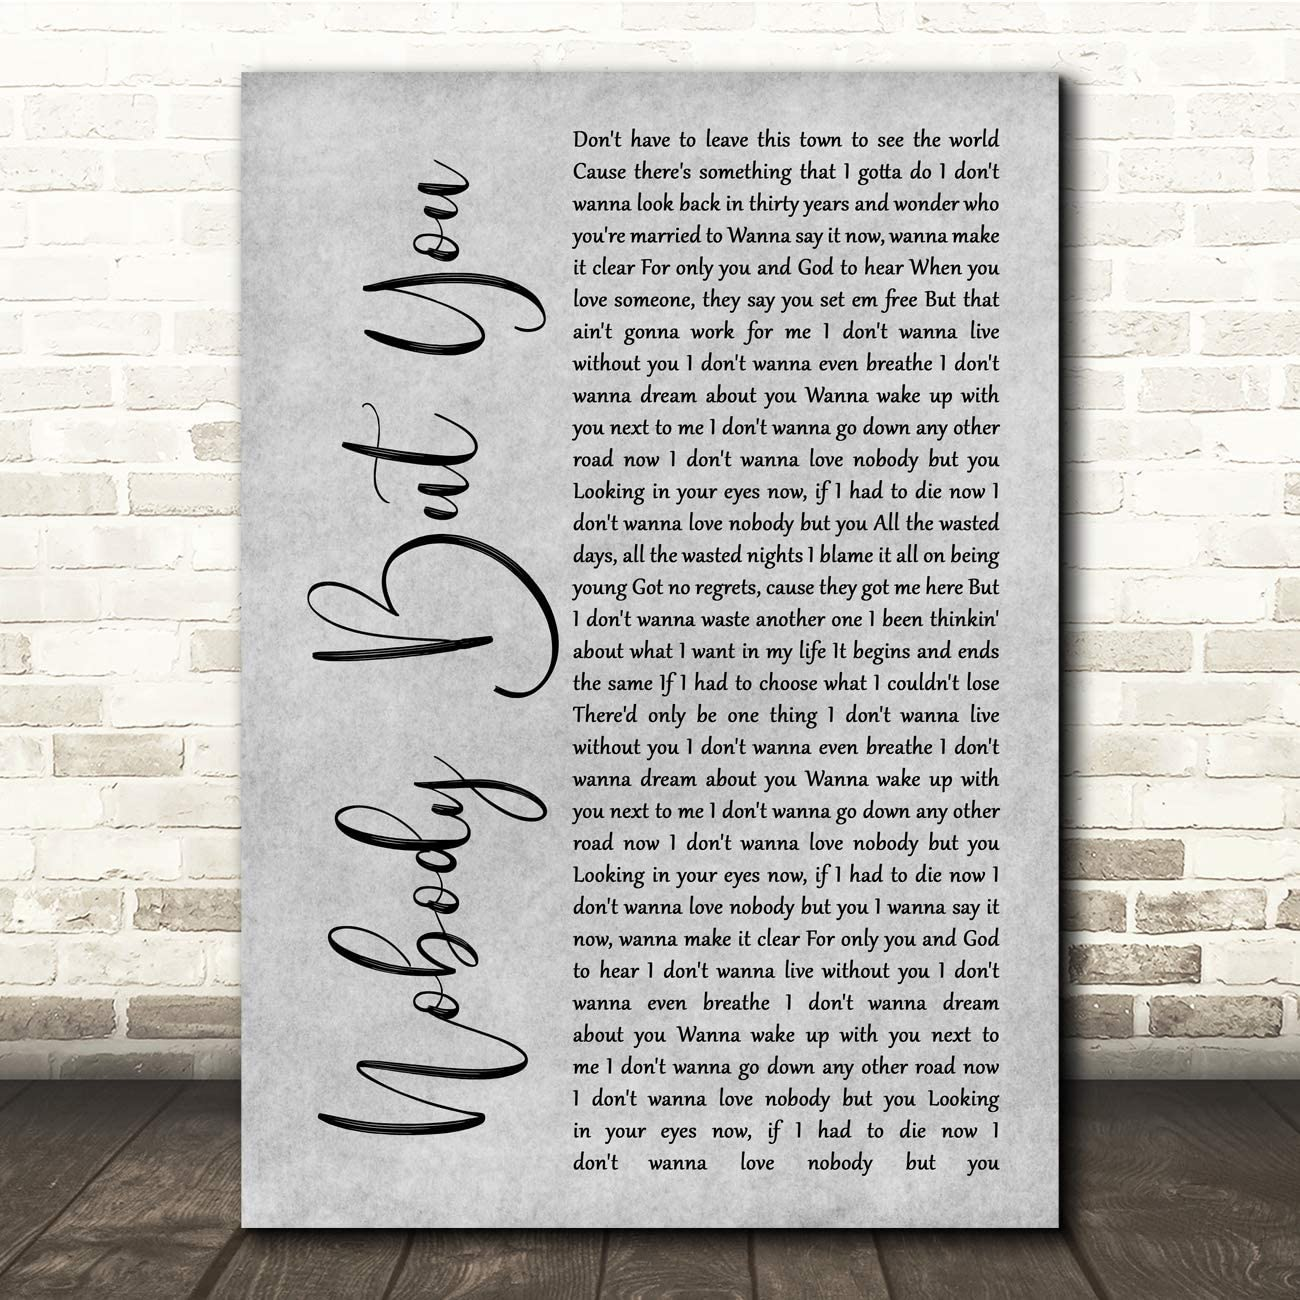 Amazon Com Nobody But You Grey Rustic Script Song Lyric Quote Music Print Office Products When you're not close to my body you're a bittersweet delight come and help me through the night. amazon com